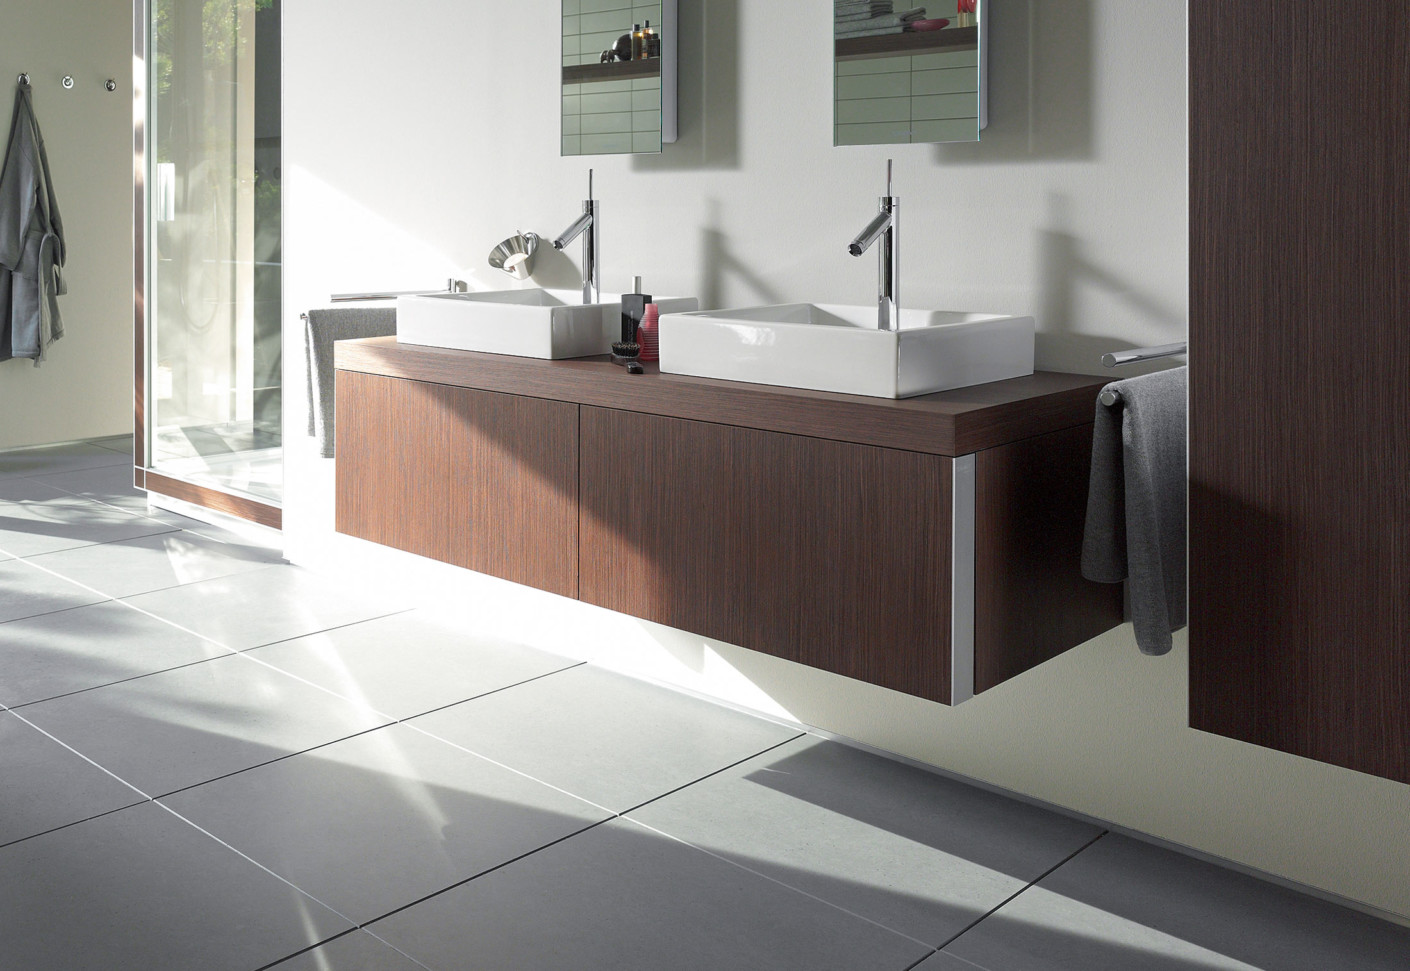 german kitchen cabinets remodel on a budget starck washbasin double vanity unit by duravit | stylepark